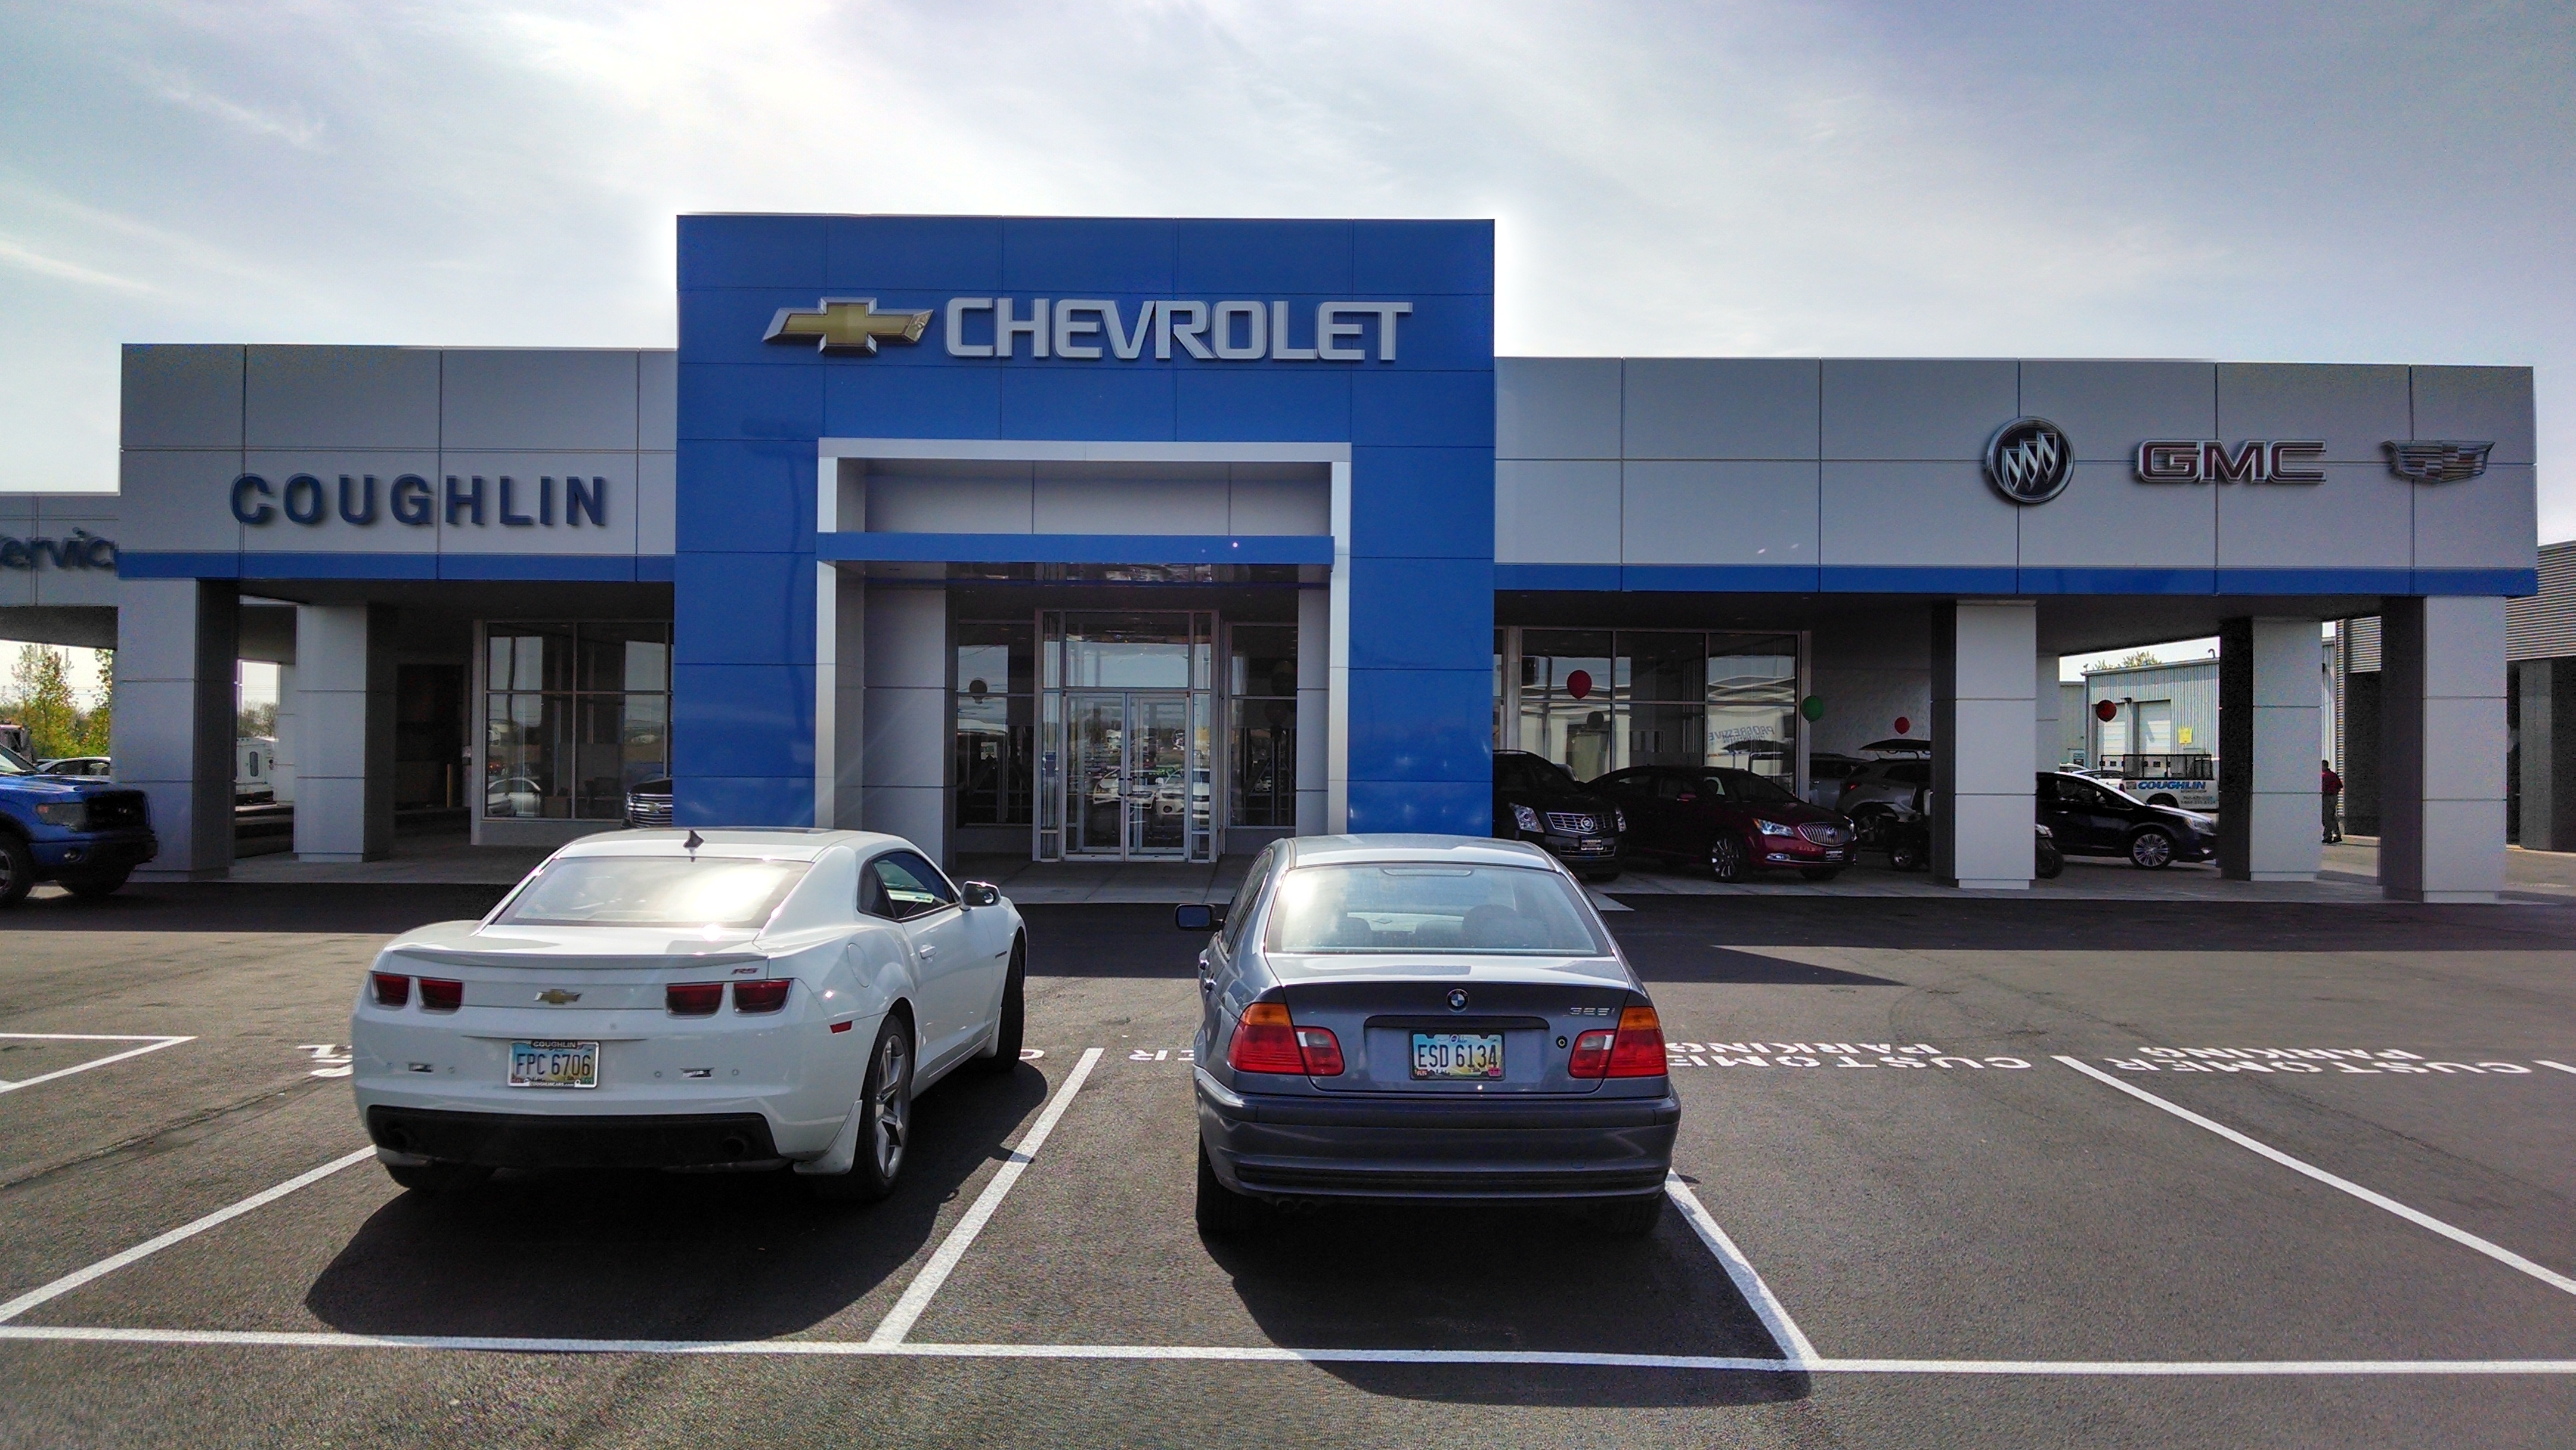 Coughlin Circleville Ohio Used Cars